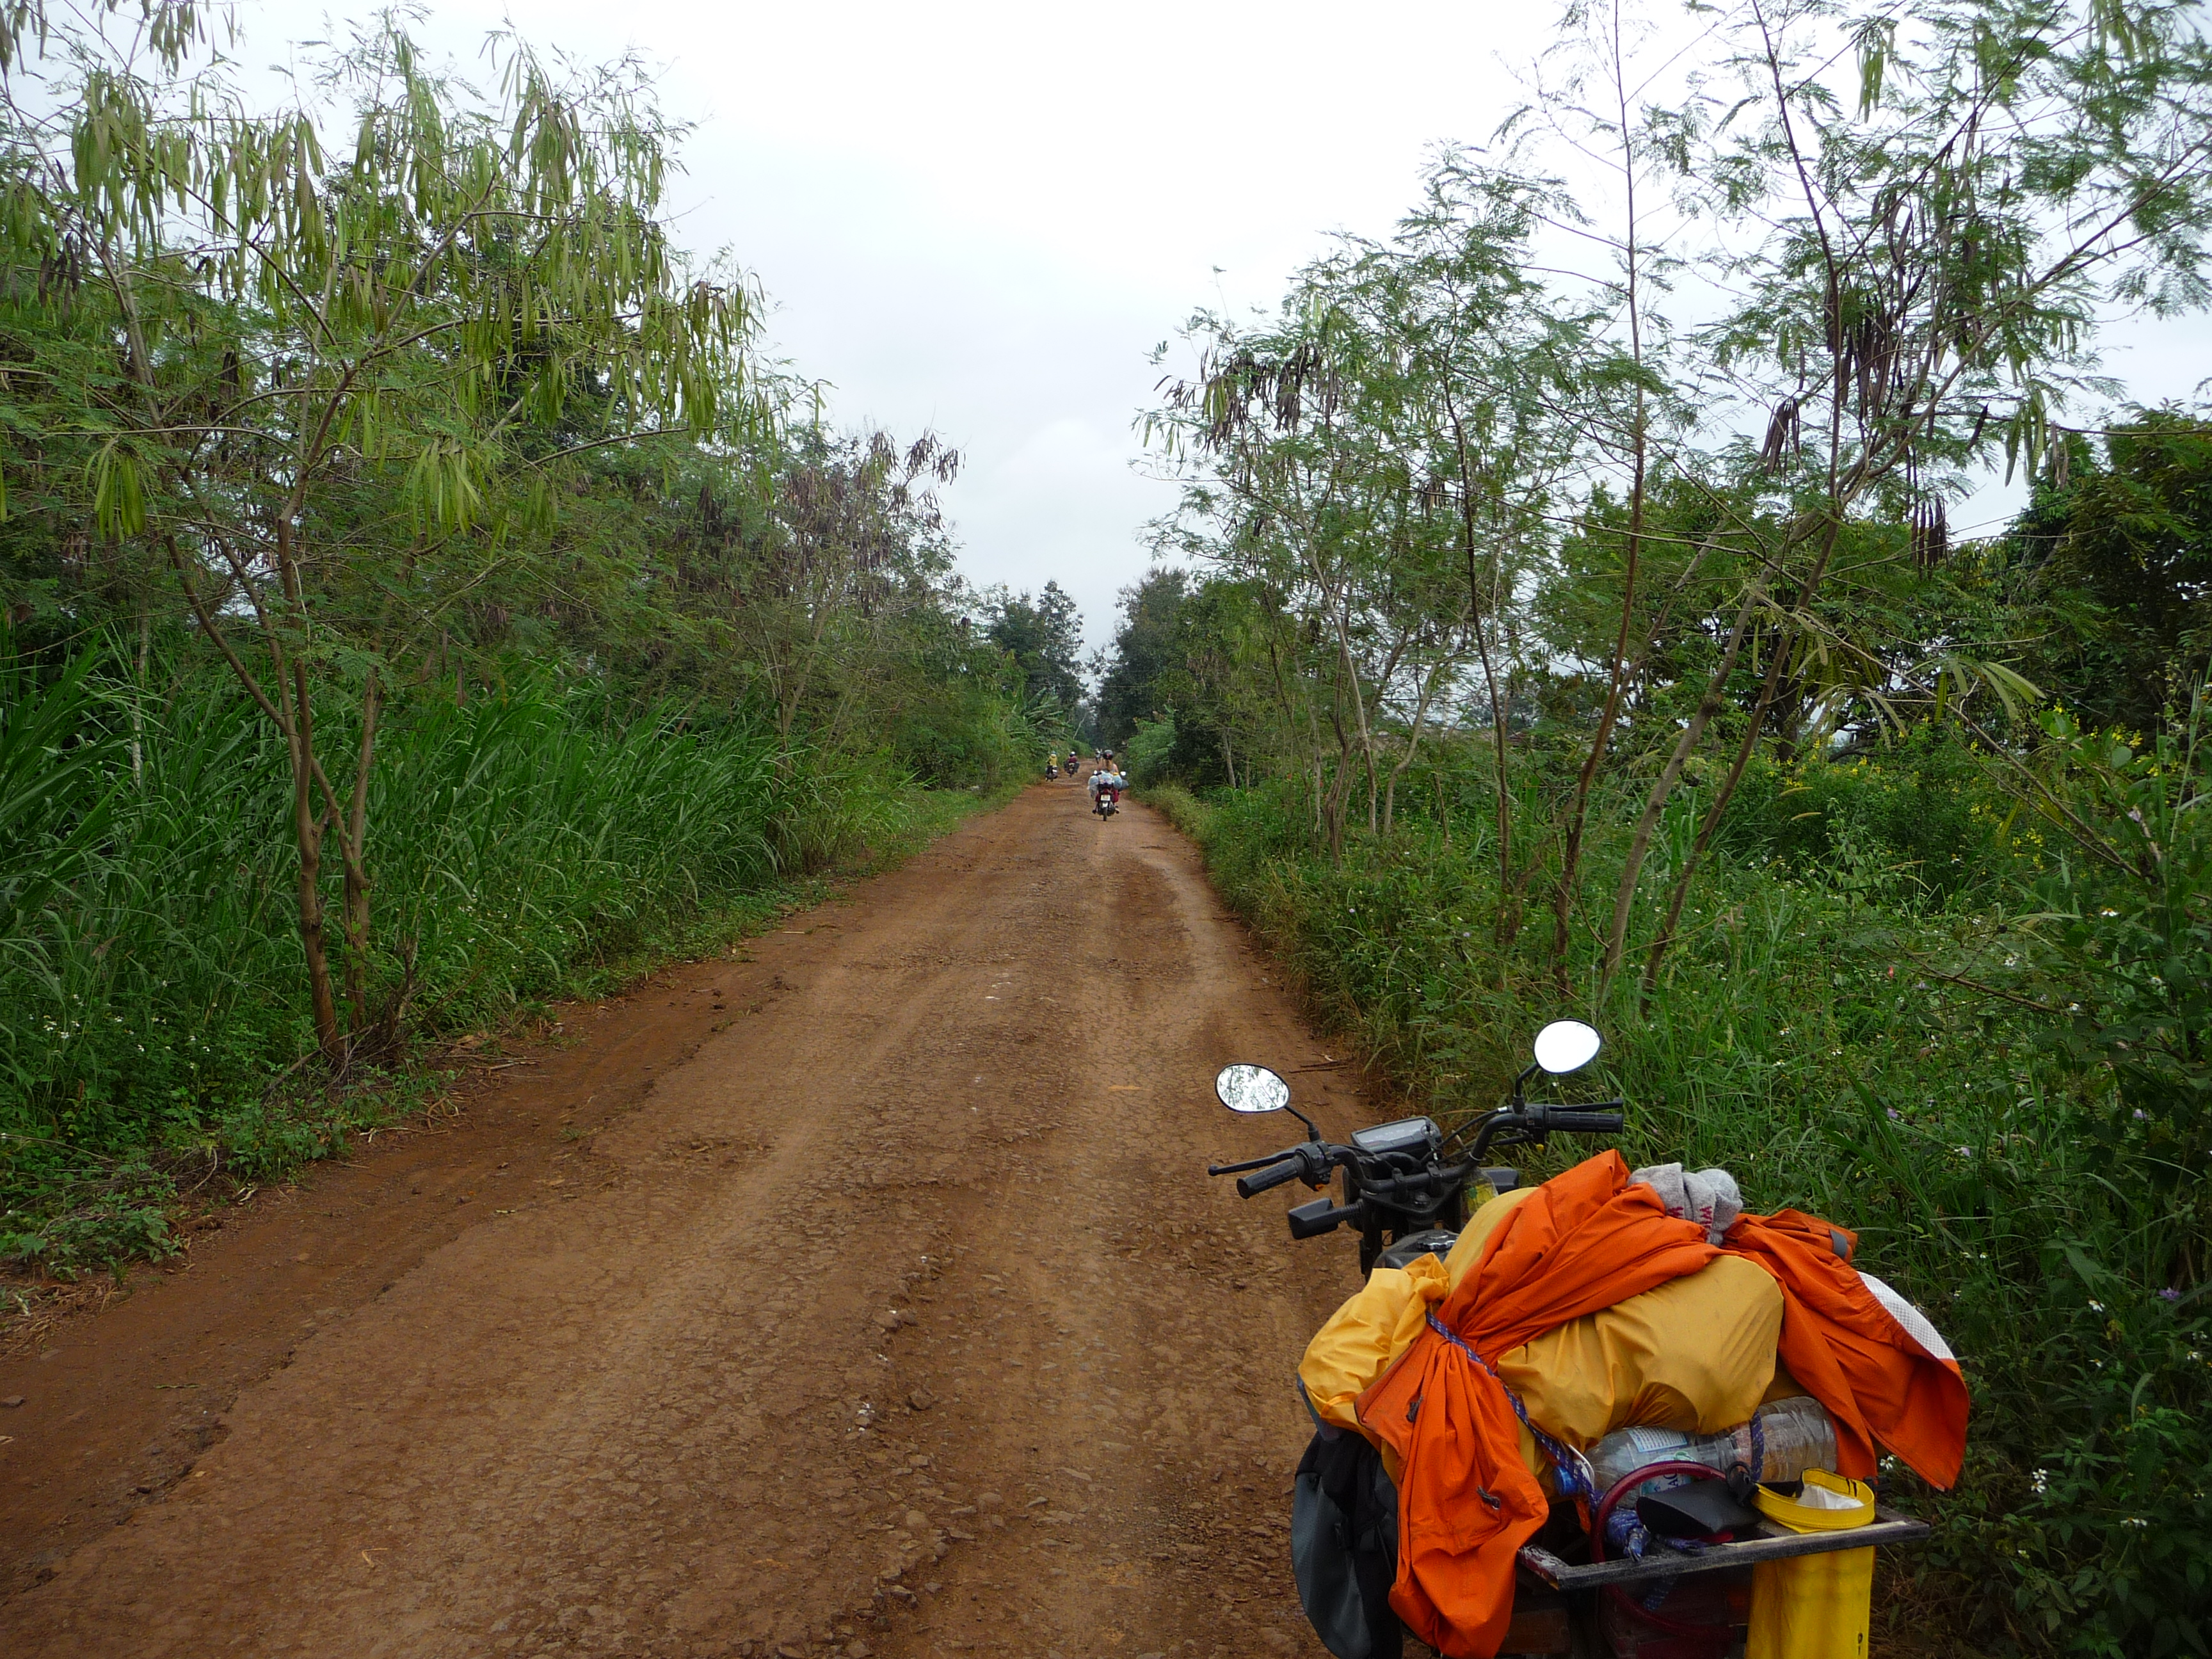 Vietnam By Motorcycle – Not Much in Nha Trang